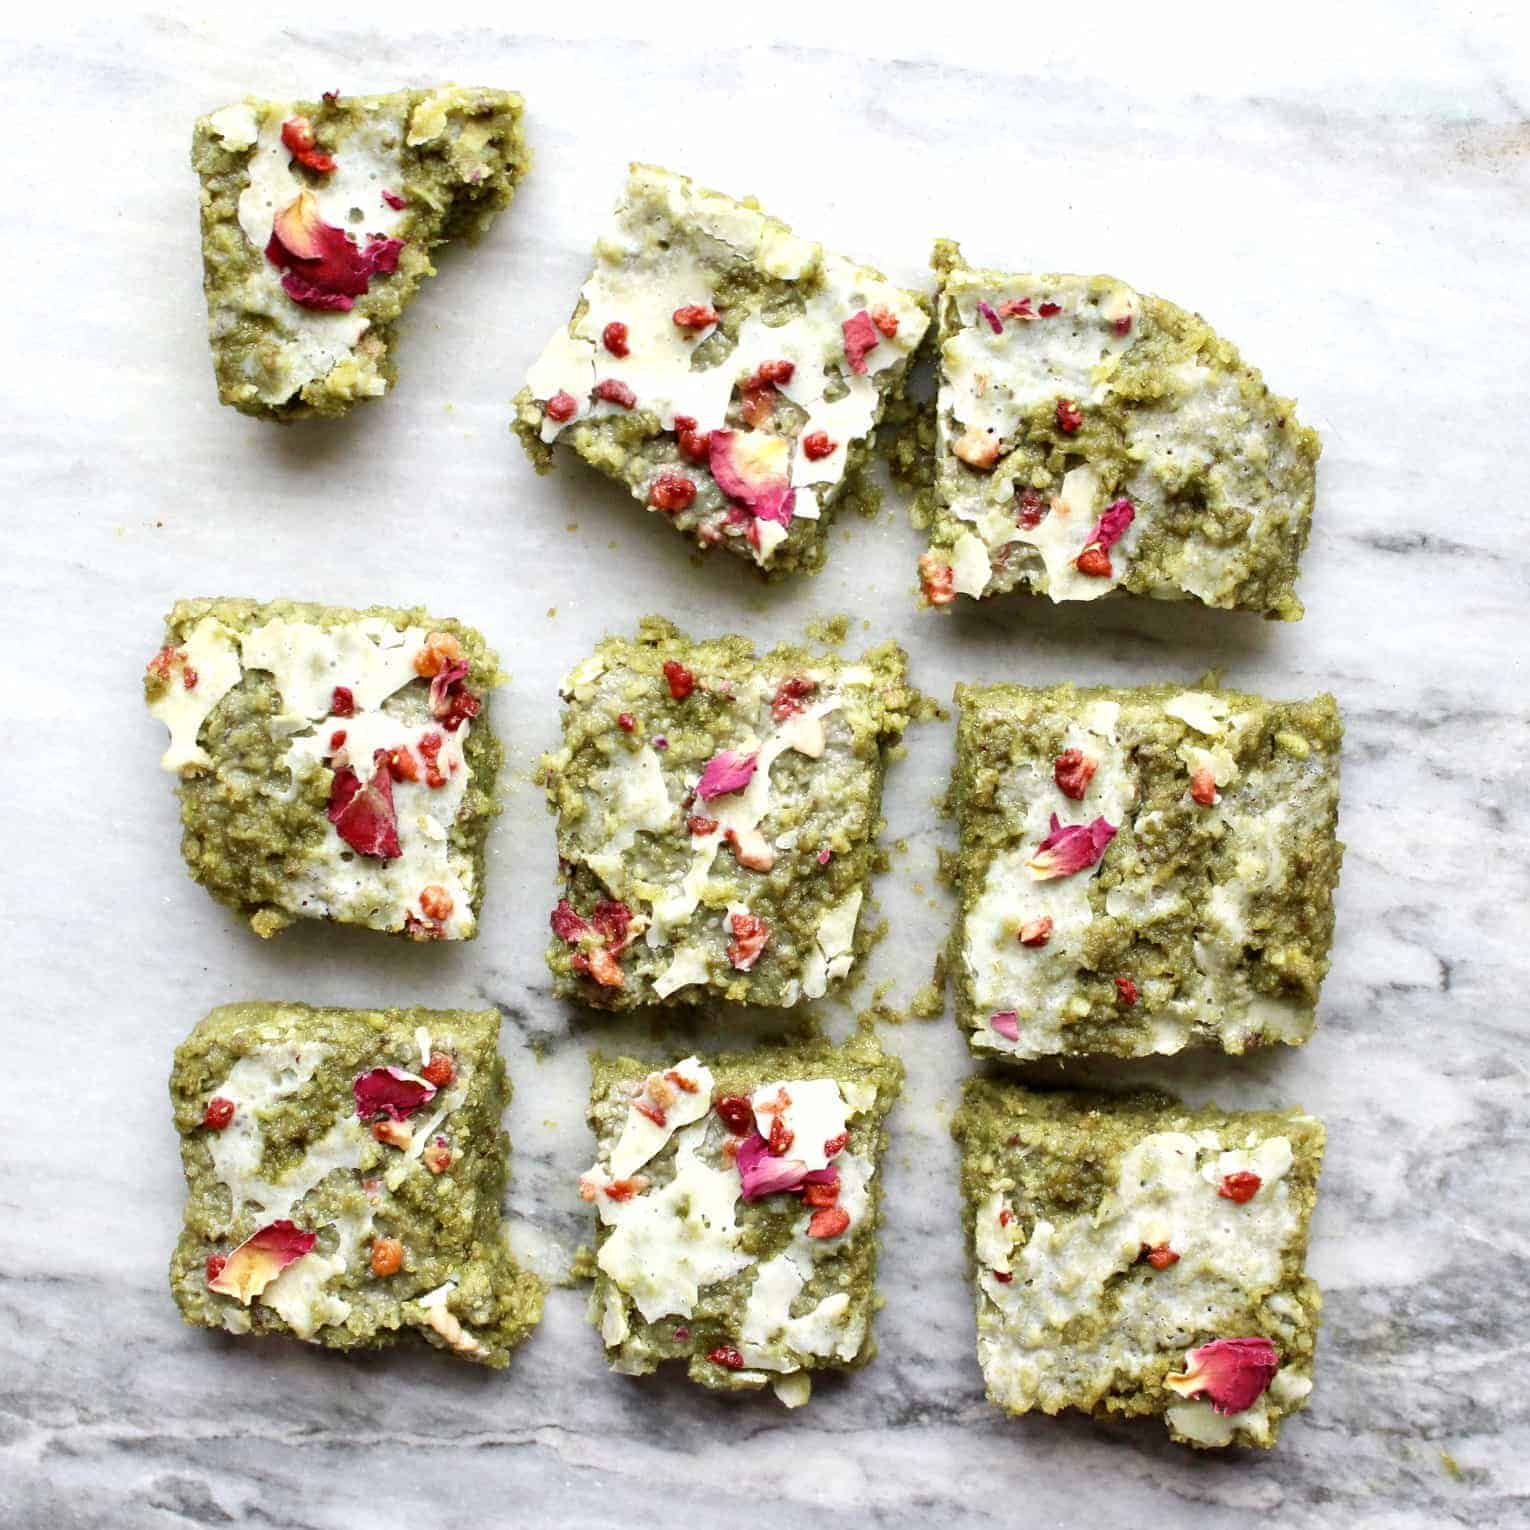 Gluten-Free Vegan Matcha Brownies